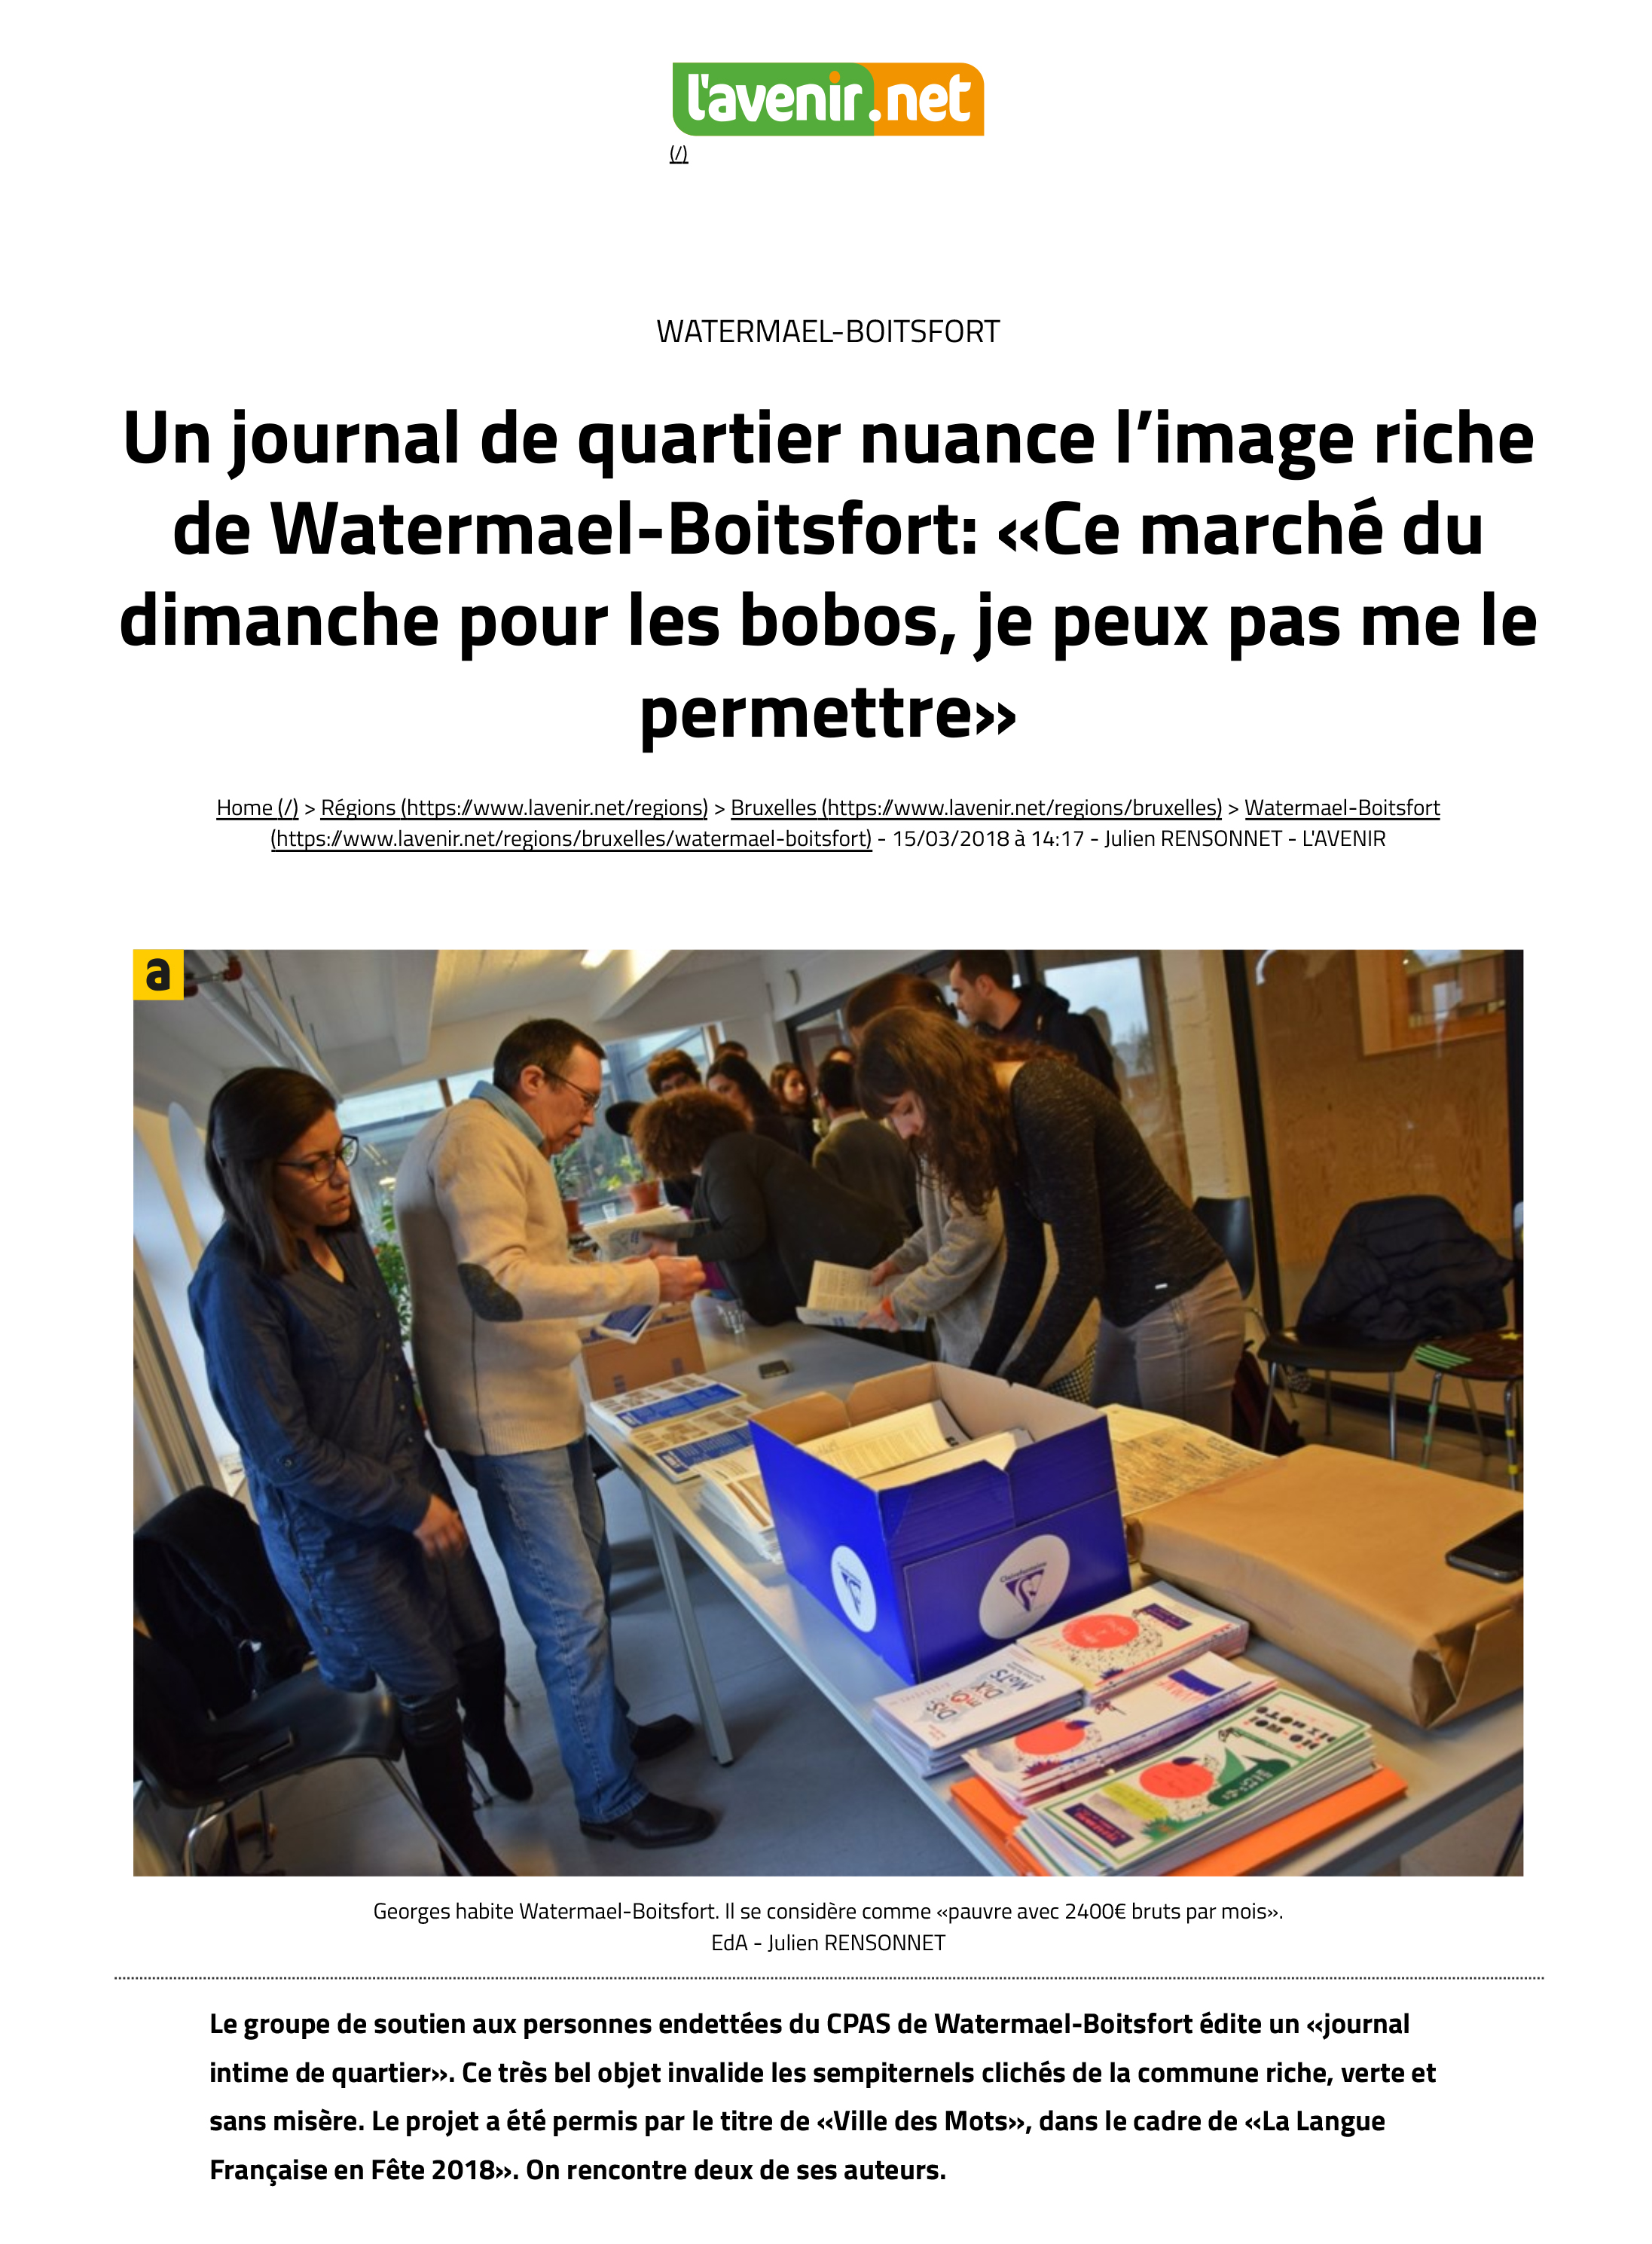 Un journal de quartier nuance l'image riche de Watermael-Boits